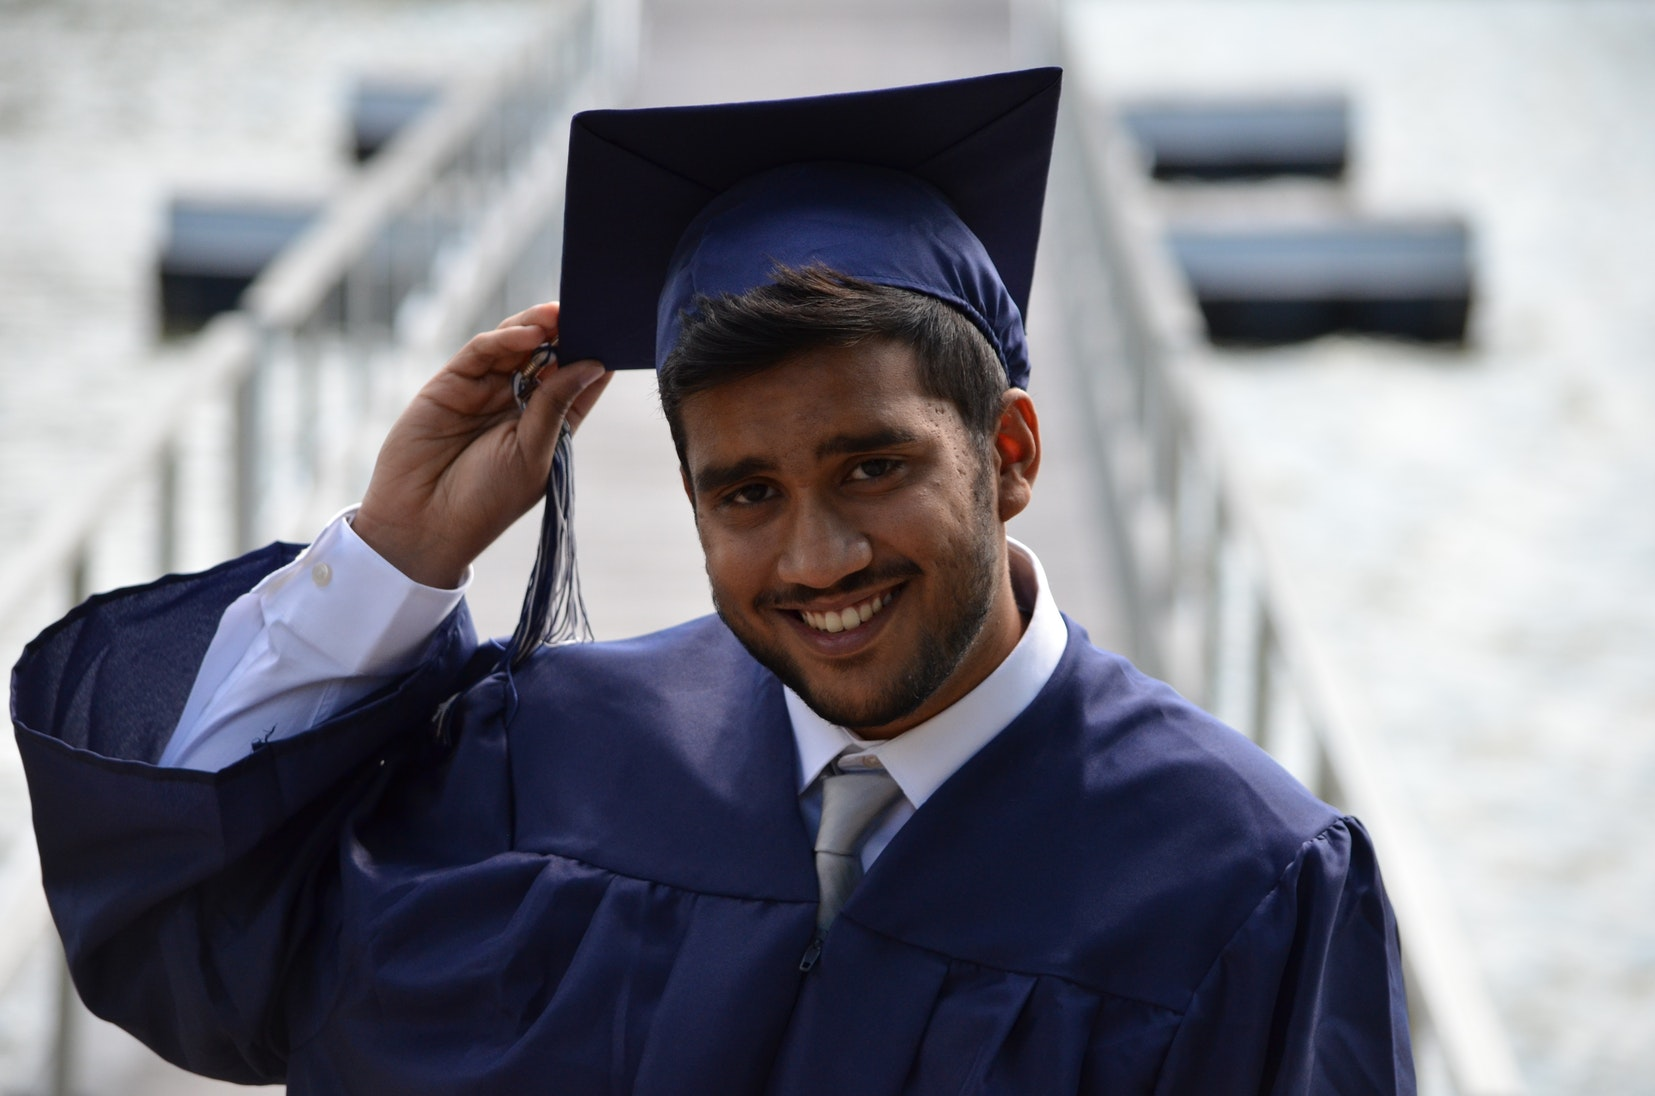 A picture of a graduate holding their hat and smiling.